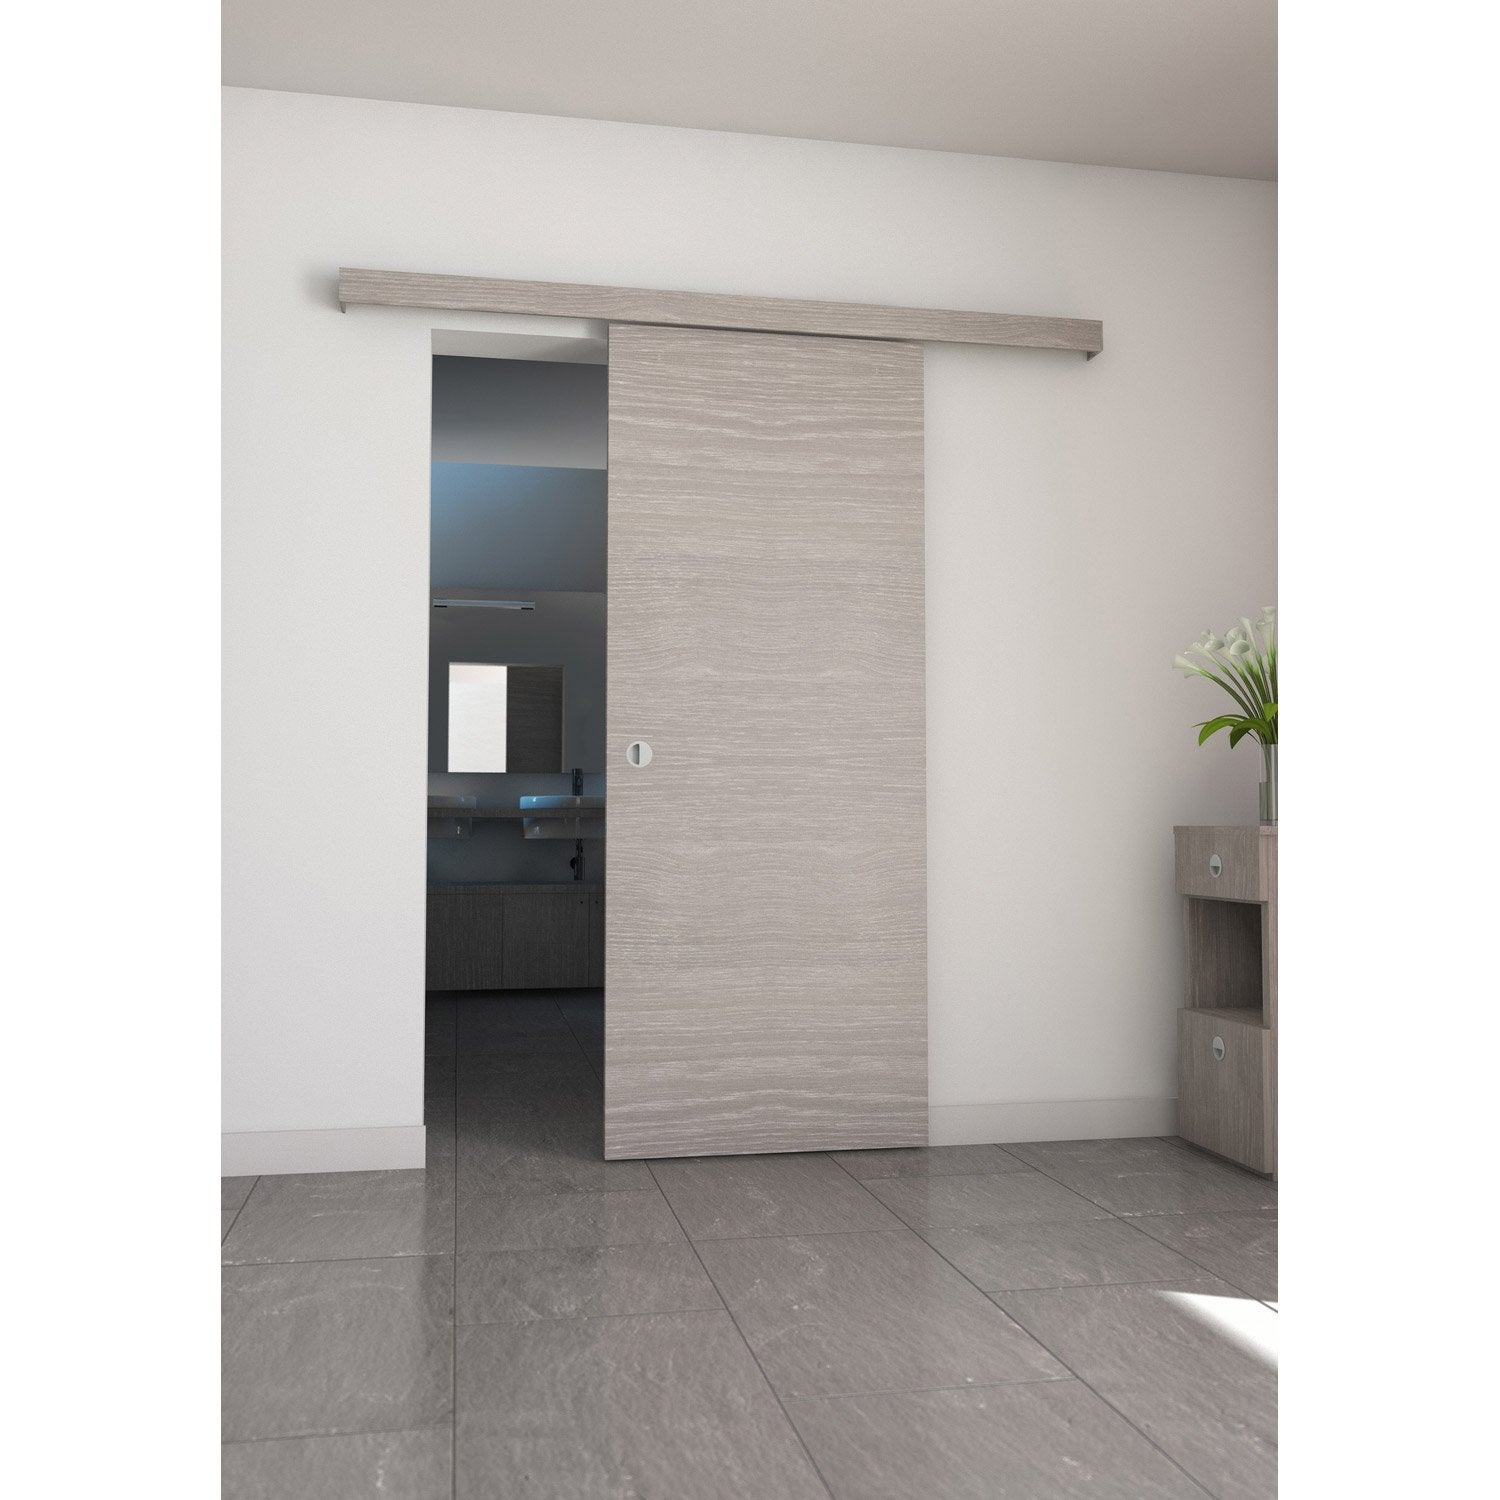 Ensemble porte coulissante coulicool mdf rev tu aluminium - Porte de garage coulissante motorisee leroy merlin ...